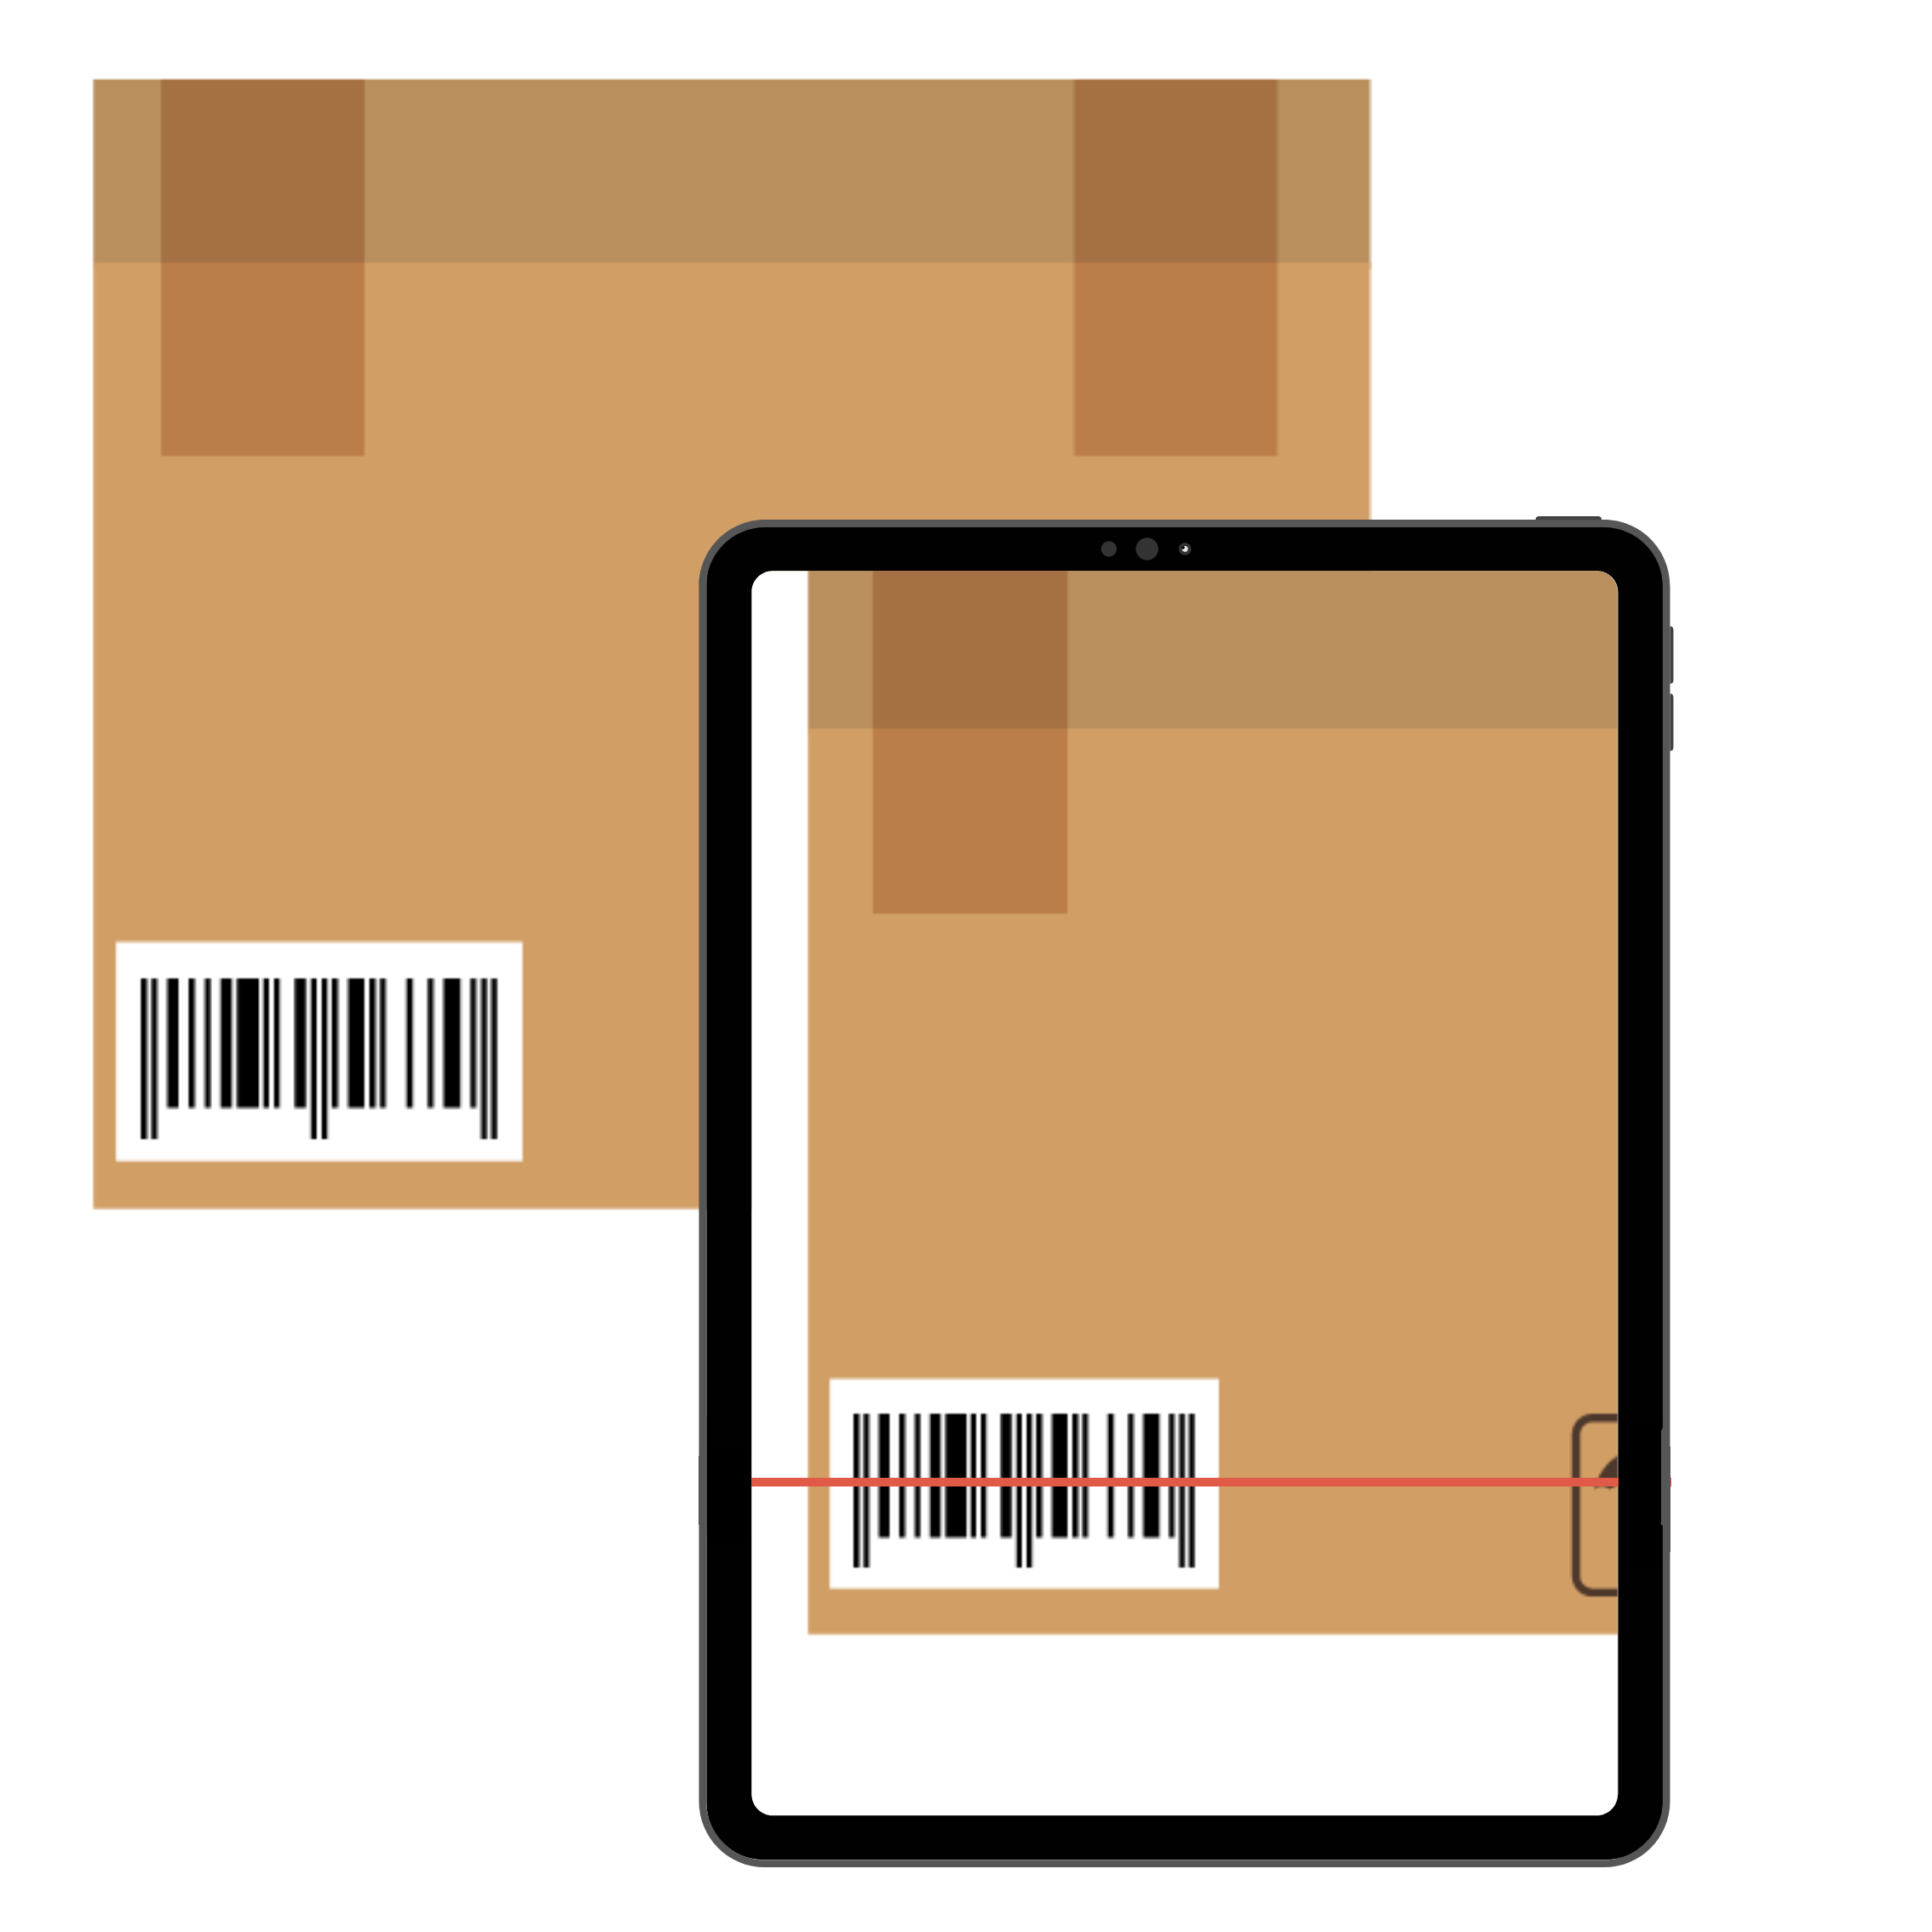 Barcode scanning on mobile form